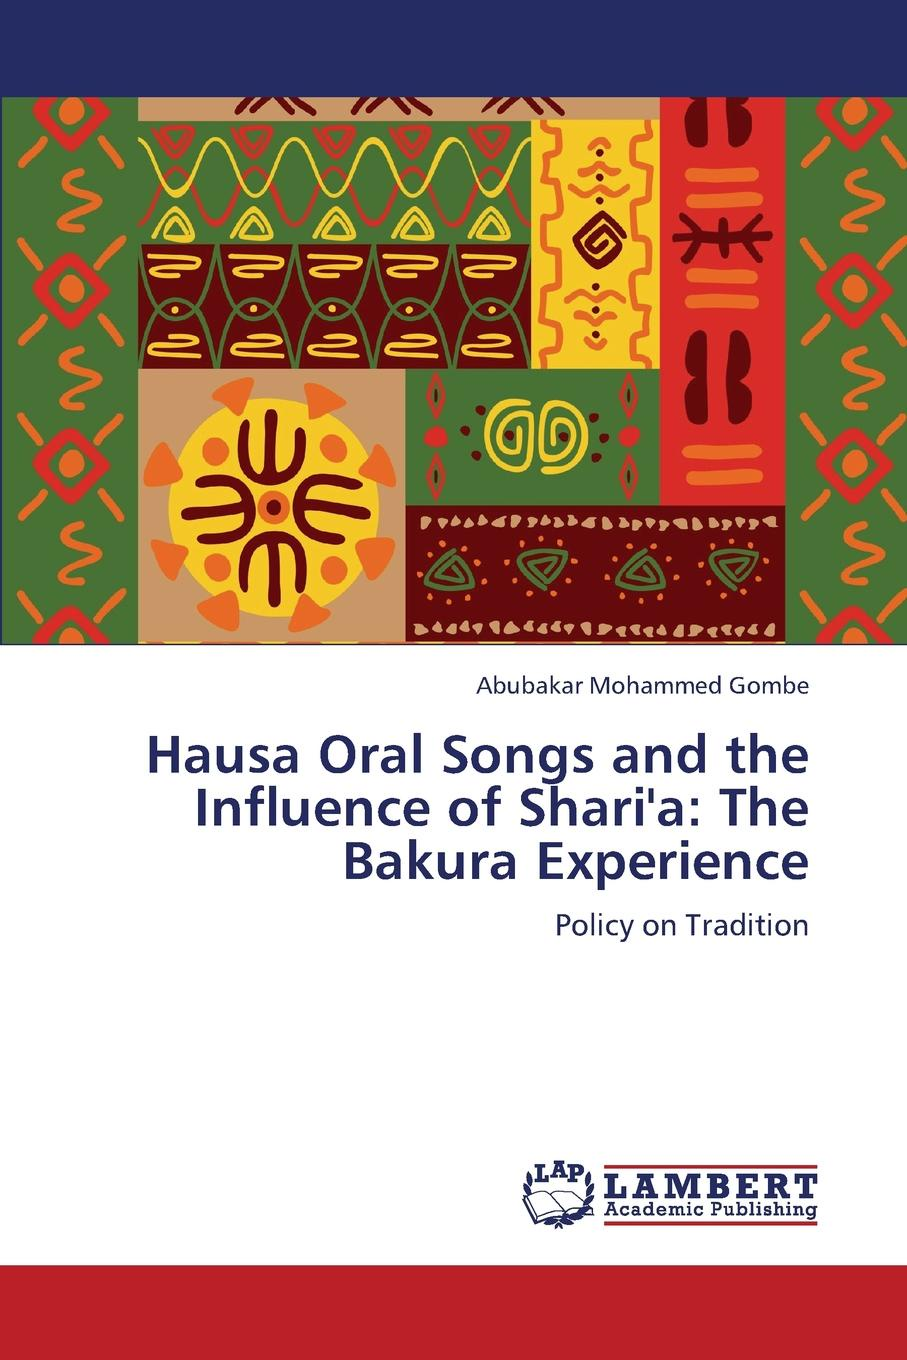 Mohammed Gombe Abubakar Hausa Oral Songs and the Influence of Shari.a. The Bakura Experience